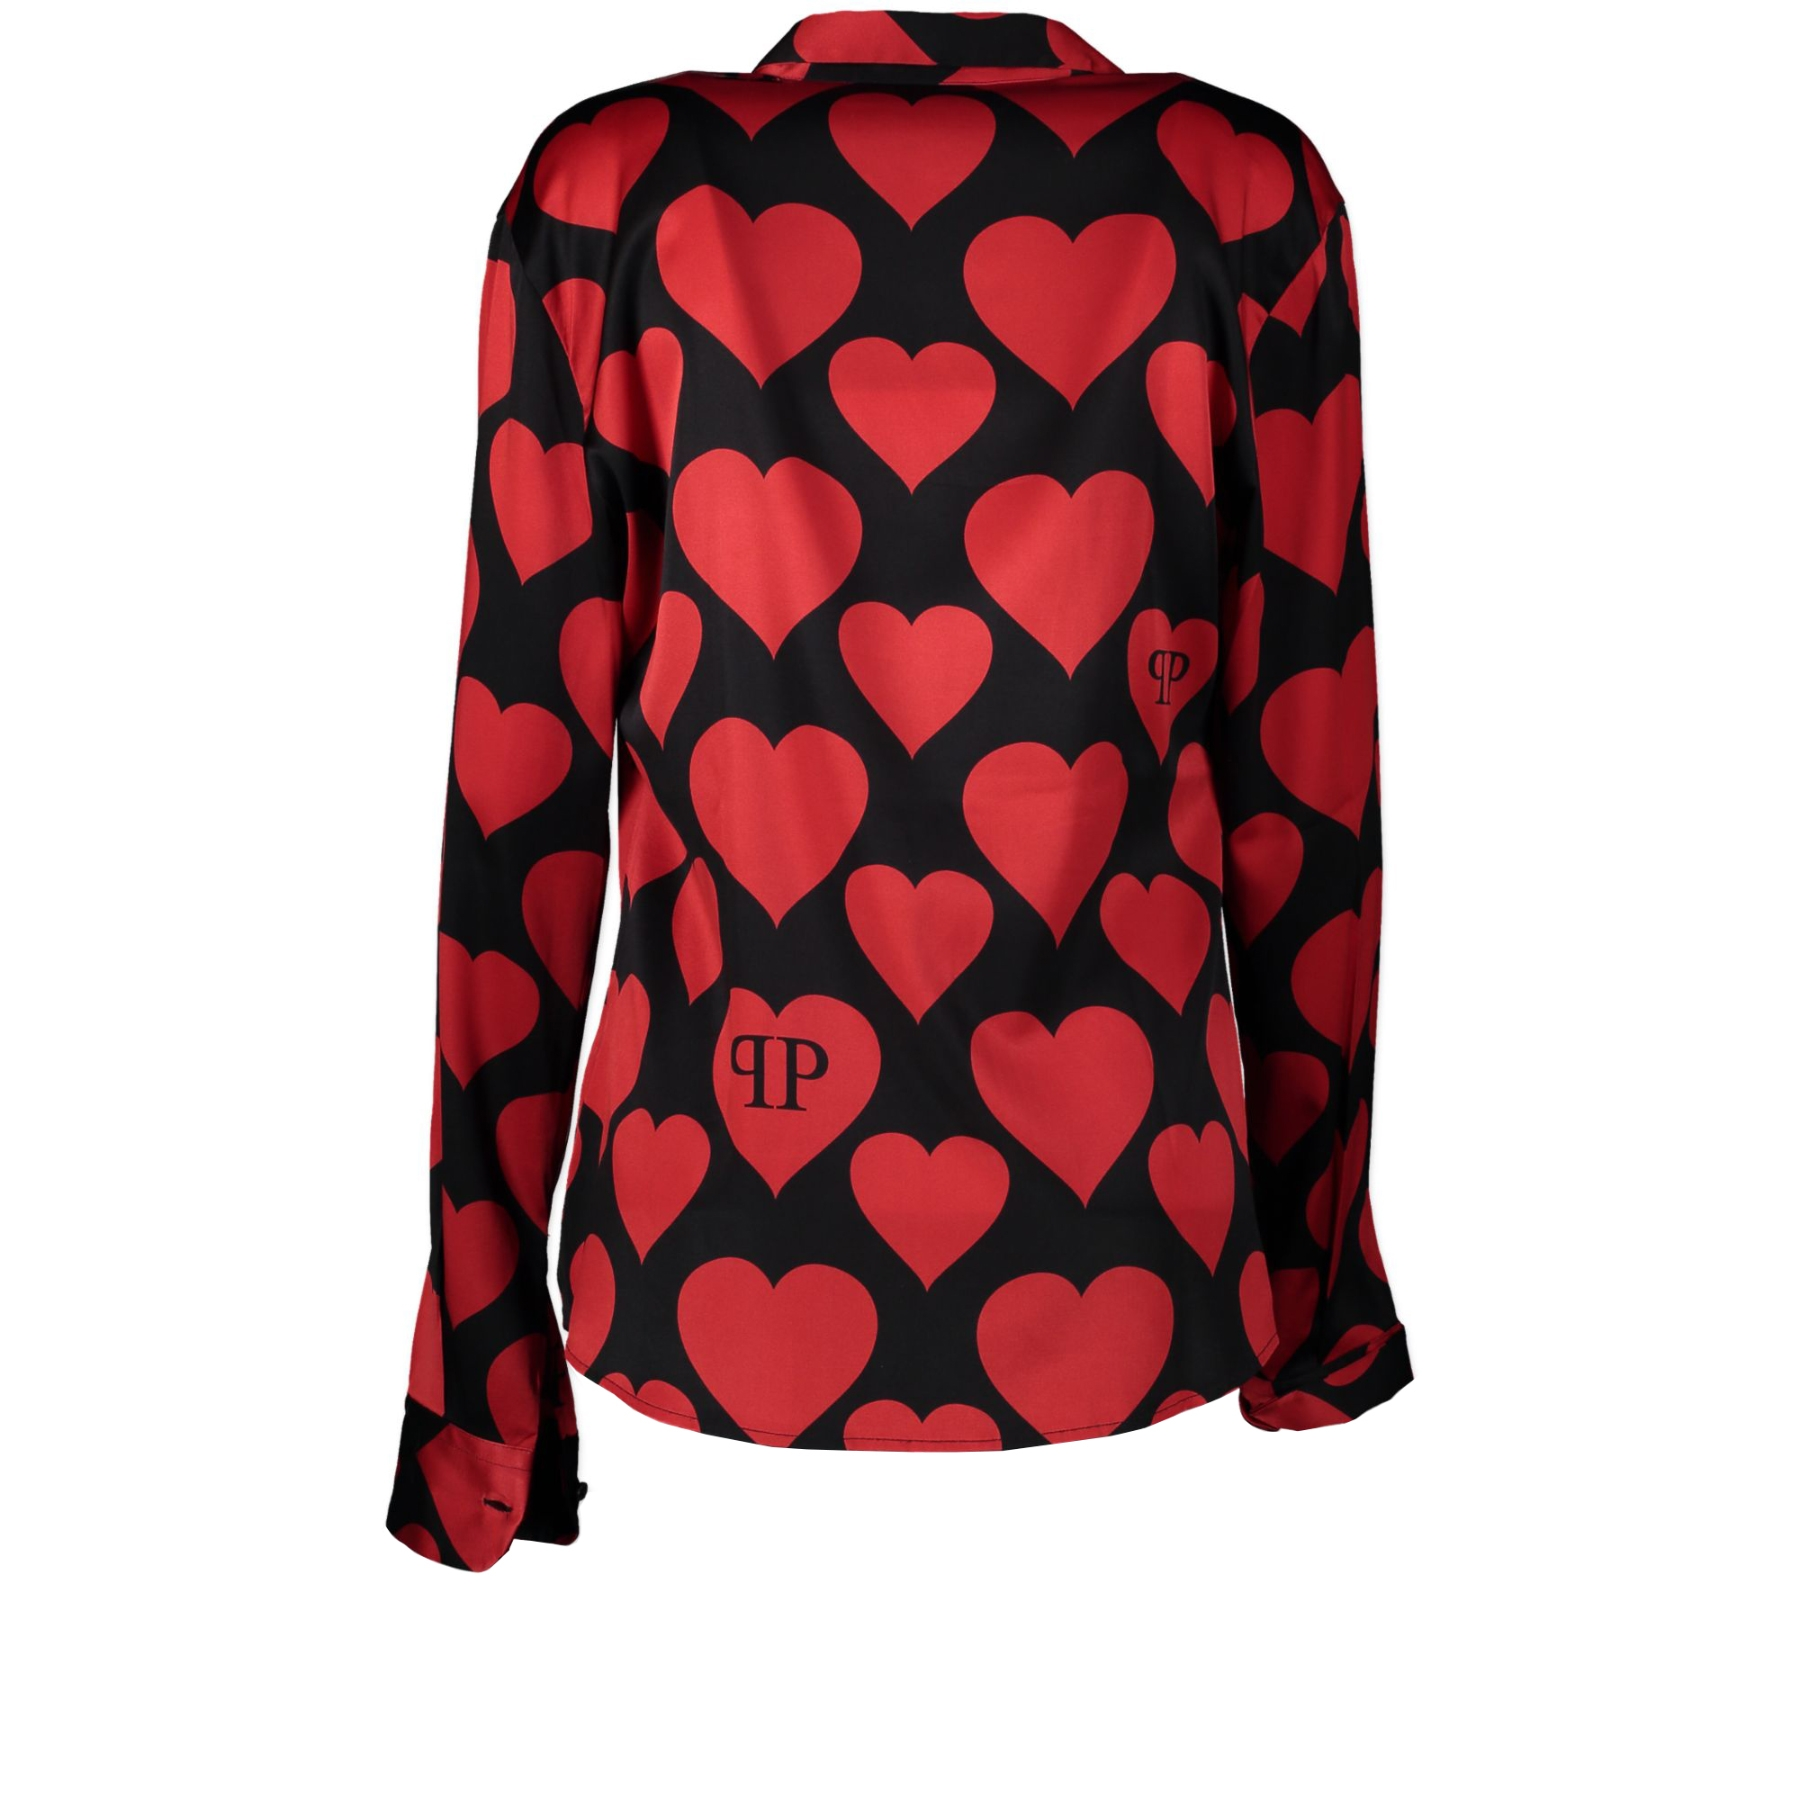 Authentic secondhand Philipp Plein Couture Black and Red Blouse - Size M designer fashion luxury vintage webshop safe secure online shopping